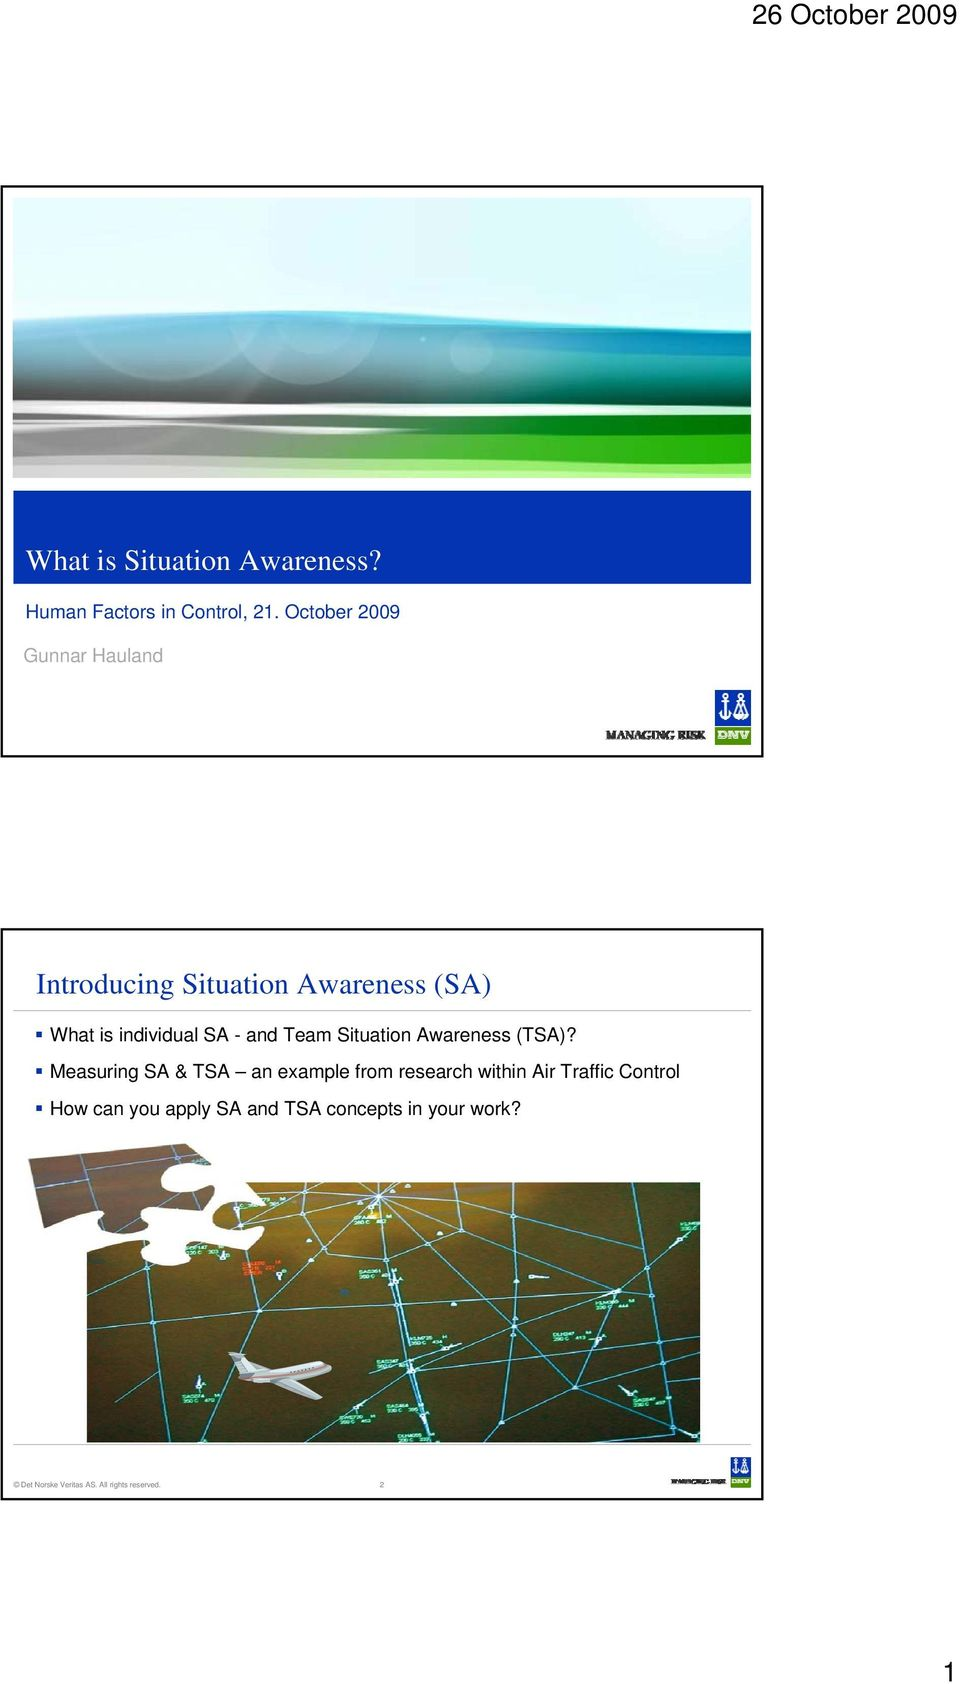 Team Situation Awareness (TSA)?